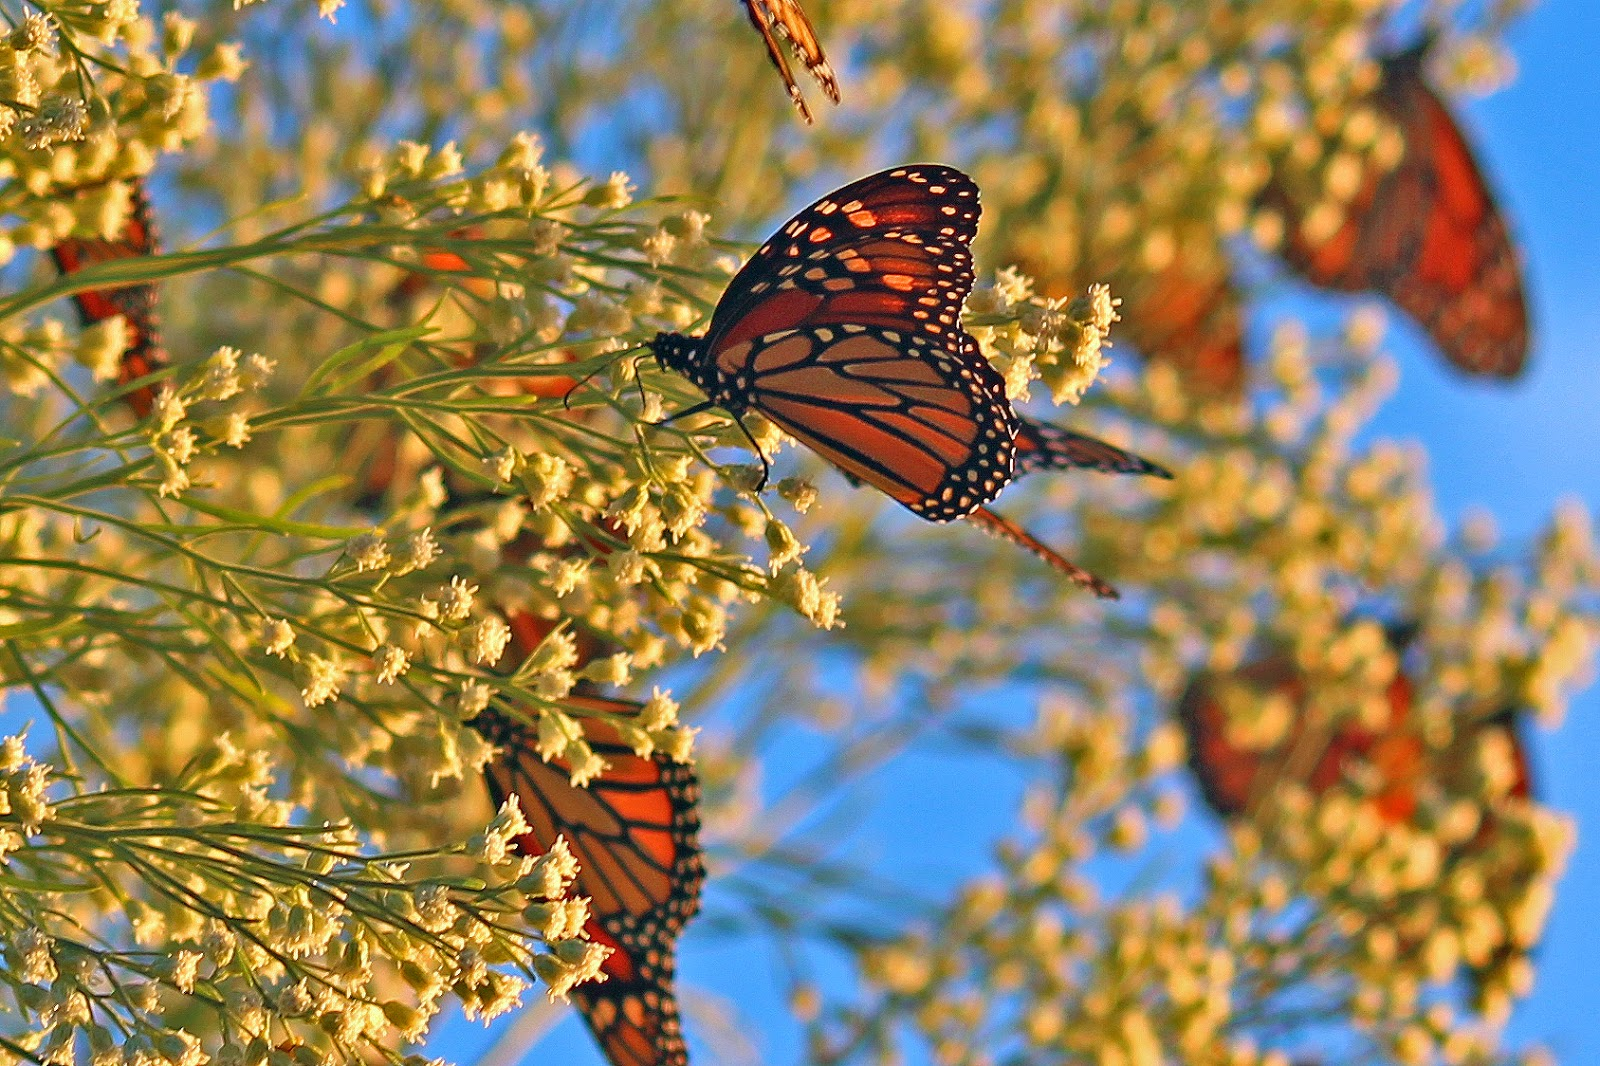 Monarch butterfly migration tree - photo#2